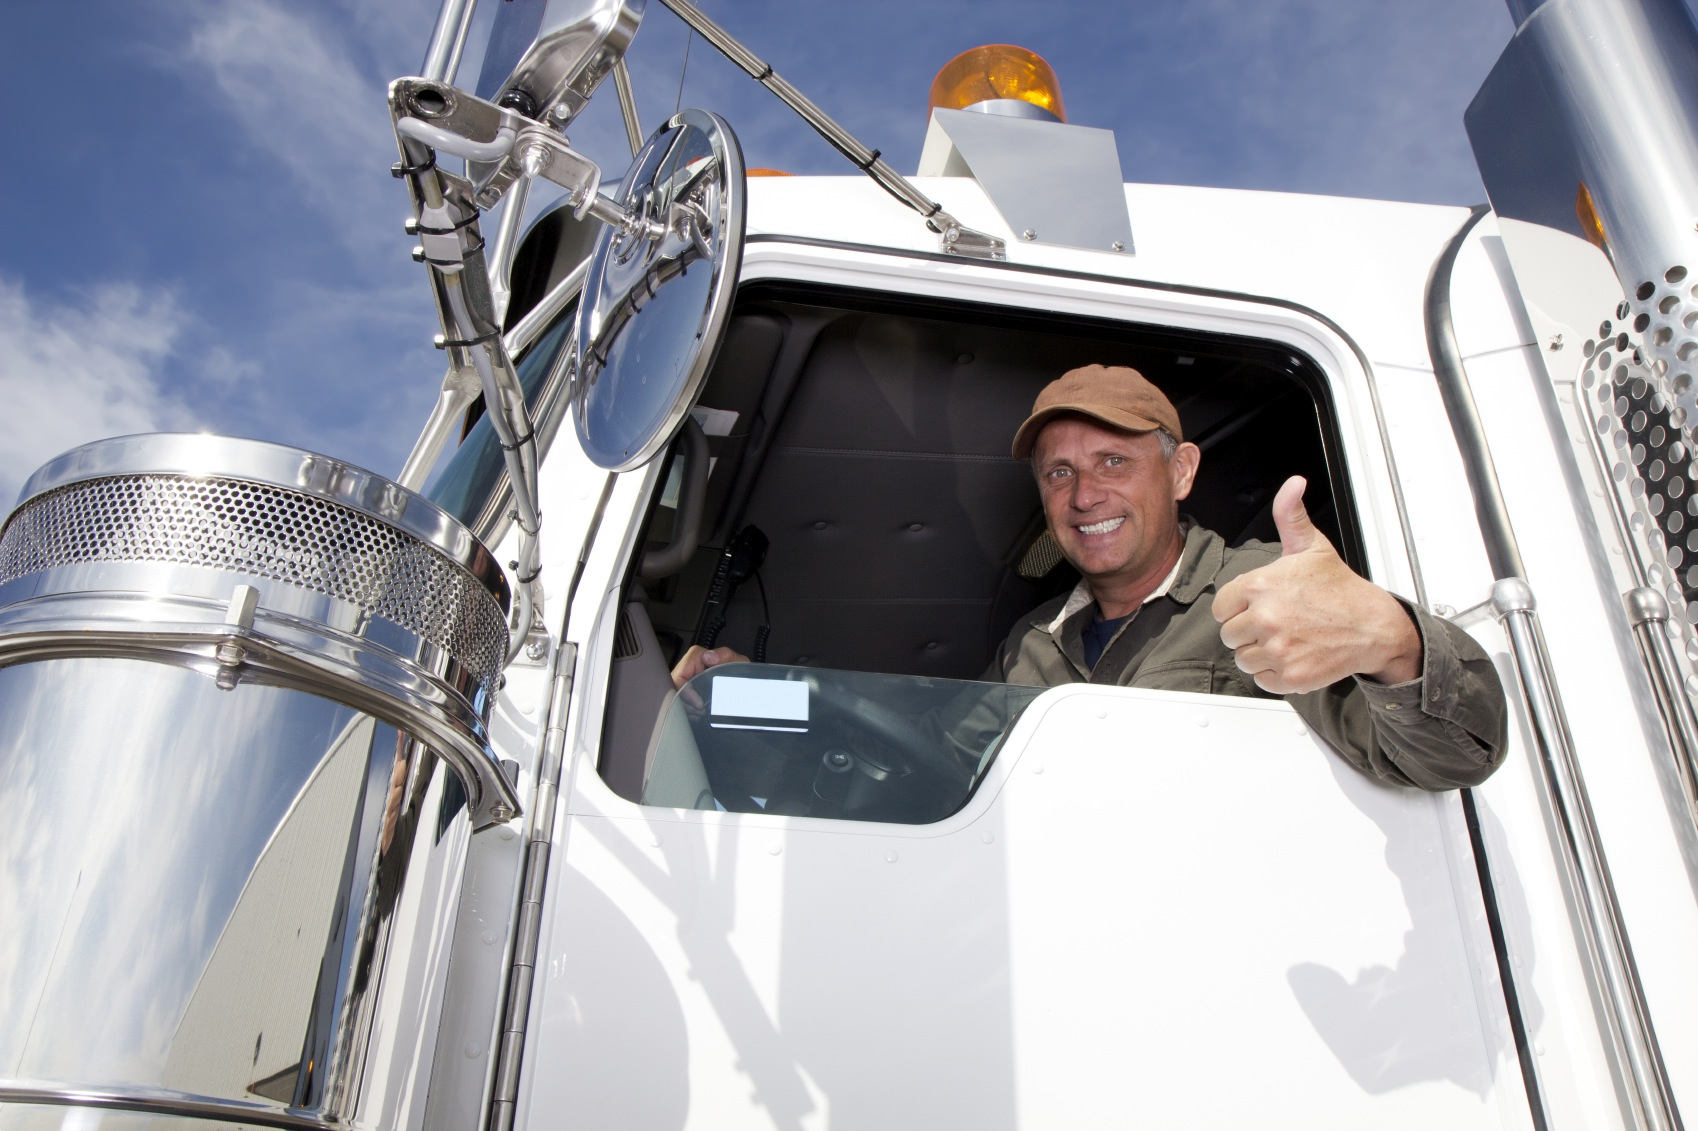 trucker-giving-thumbs-up